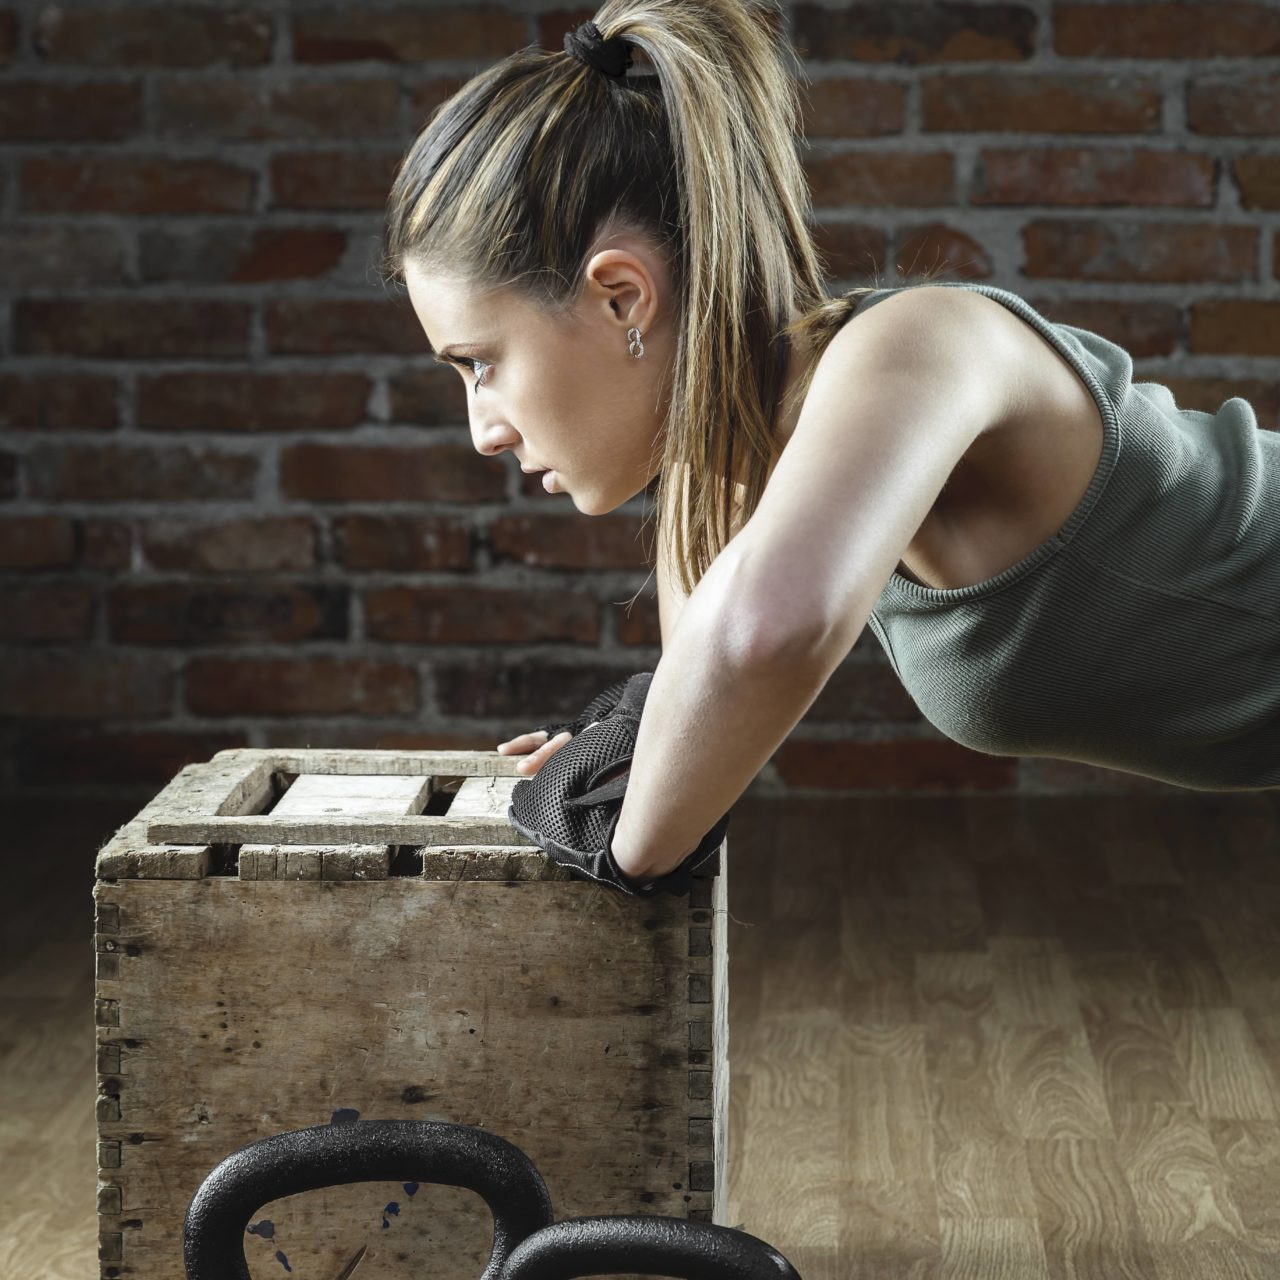 Keep it simple: 5 exercises you can do at home